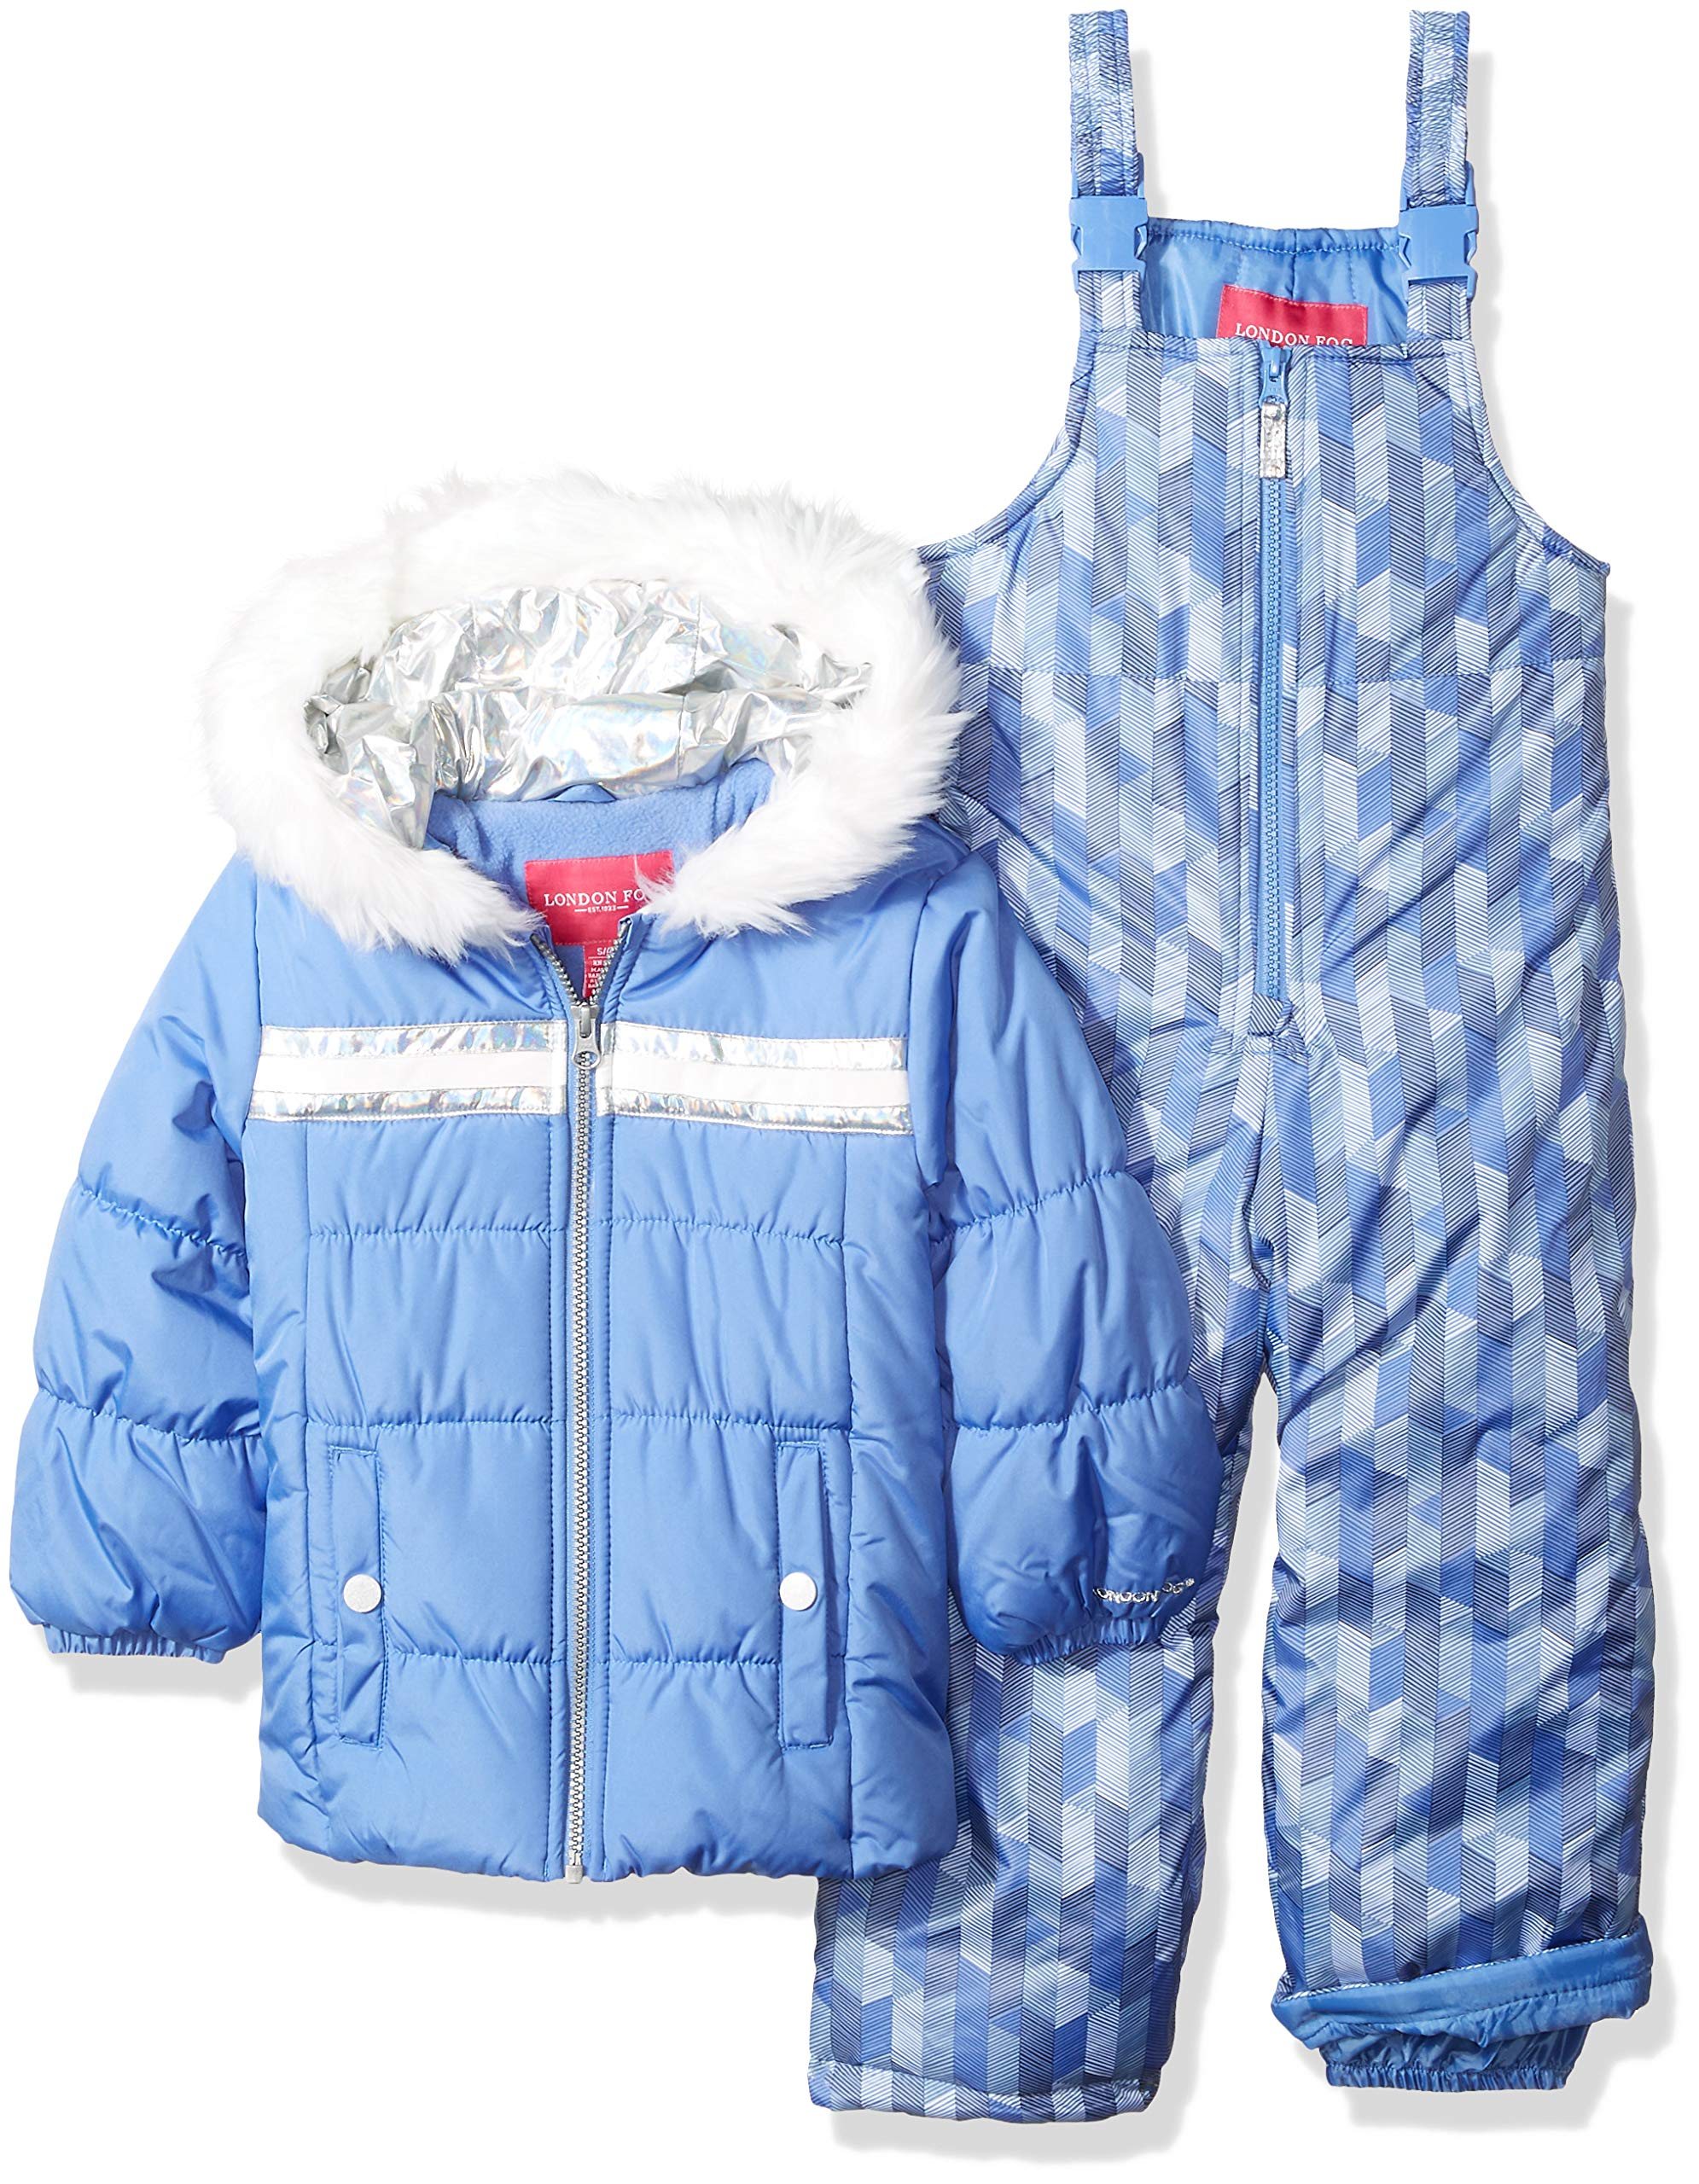 London Fog Girls' Little' Snowsuit with Snowbib and Puffer Jacket, Lavender Blue Periwinkle, 5/6 by London Fog (Image #1)